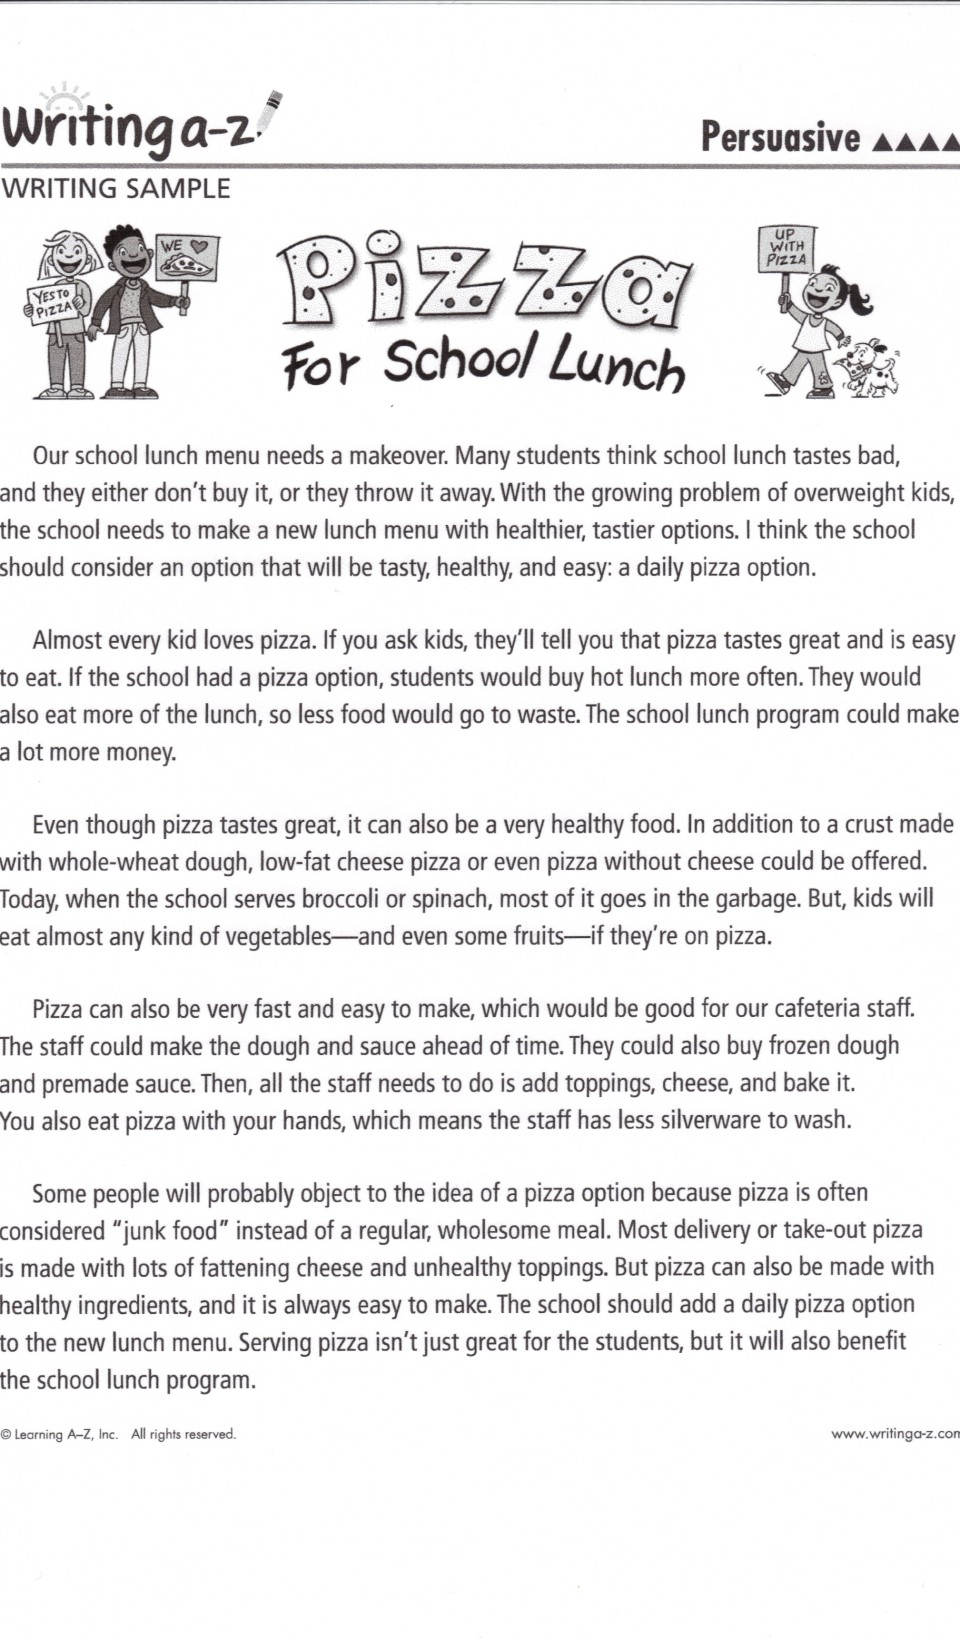 004 Essay Example 20102093b343b4120pm20fluent Opinion About Fast Unbelievable Food Restaurants Is A Good Alternative To Cooking For Yourself 960